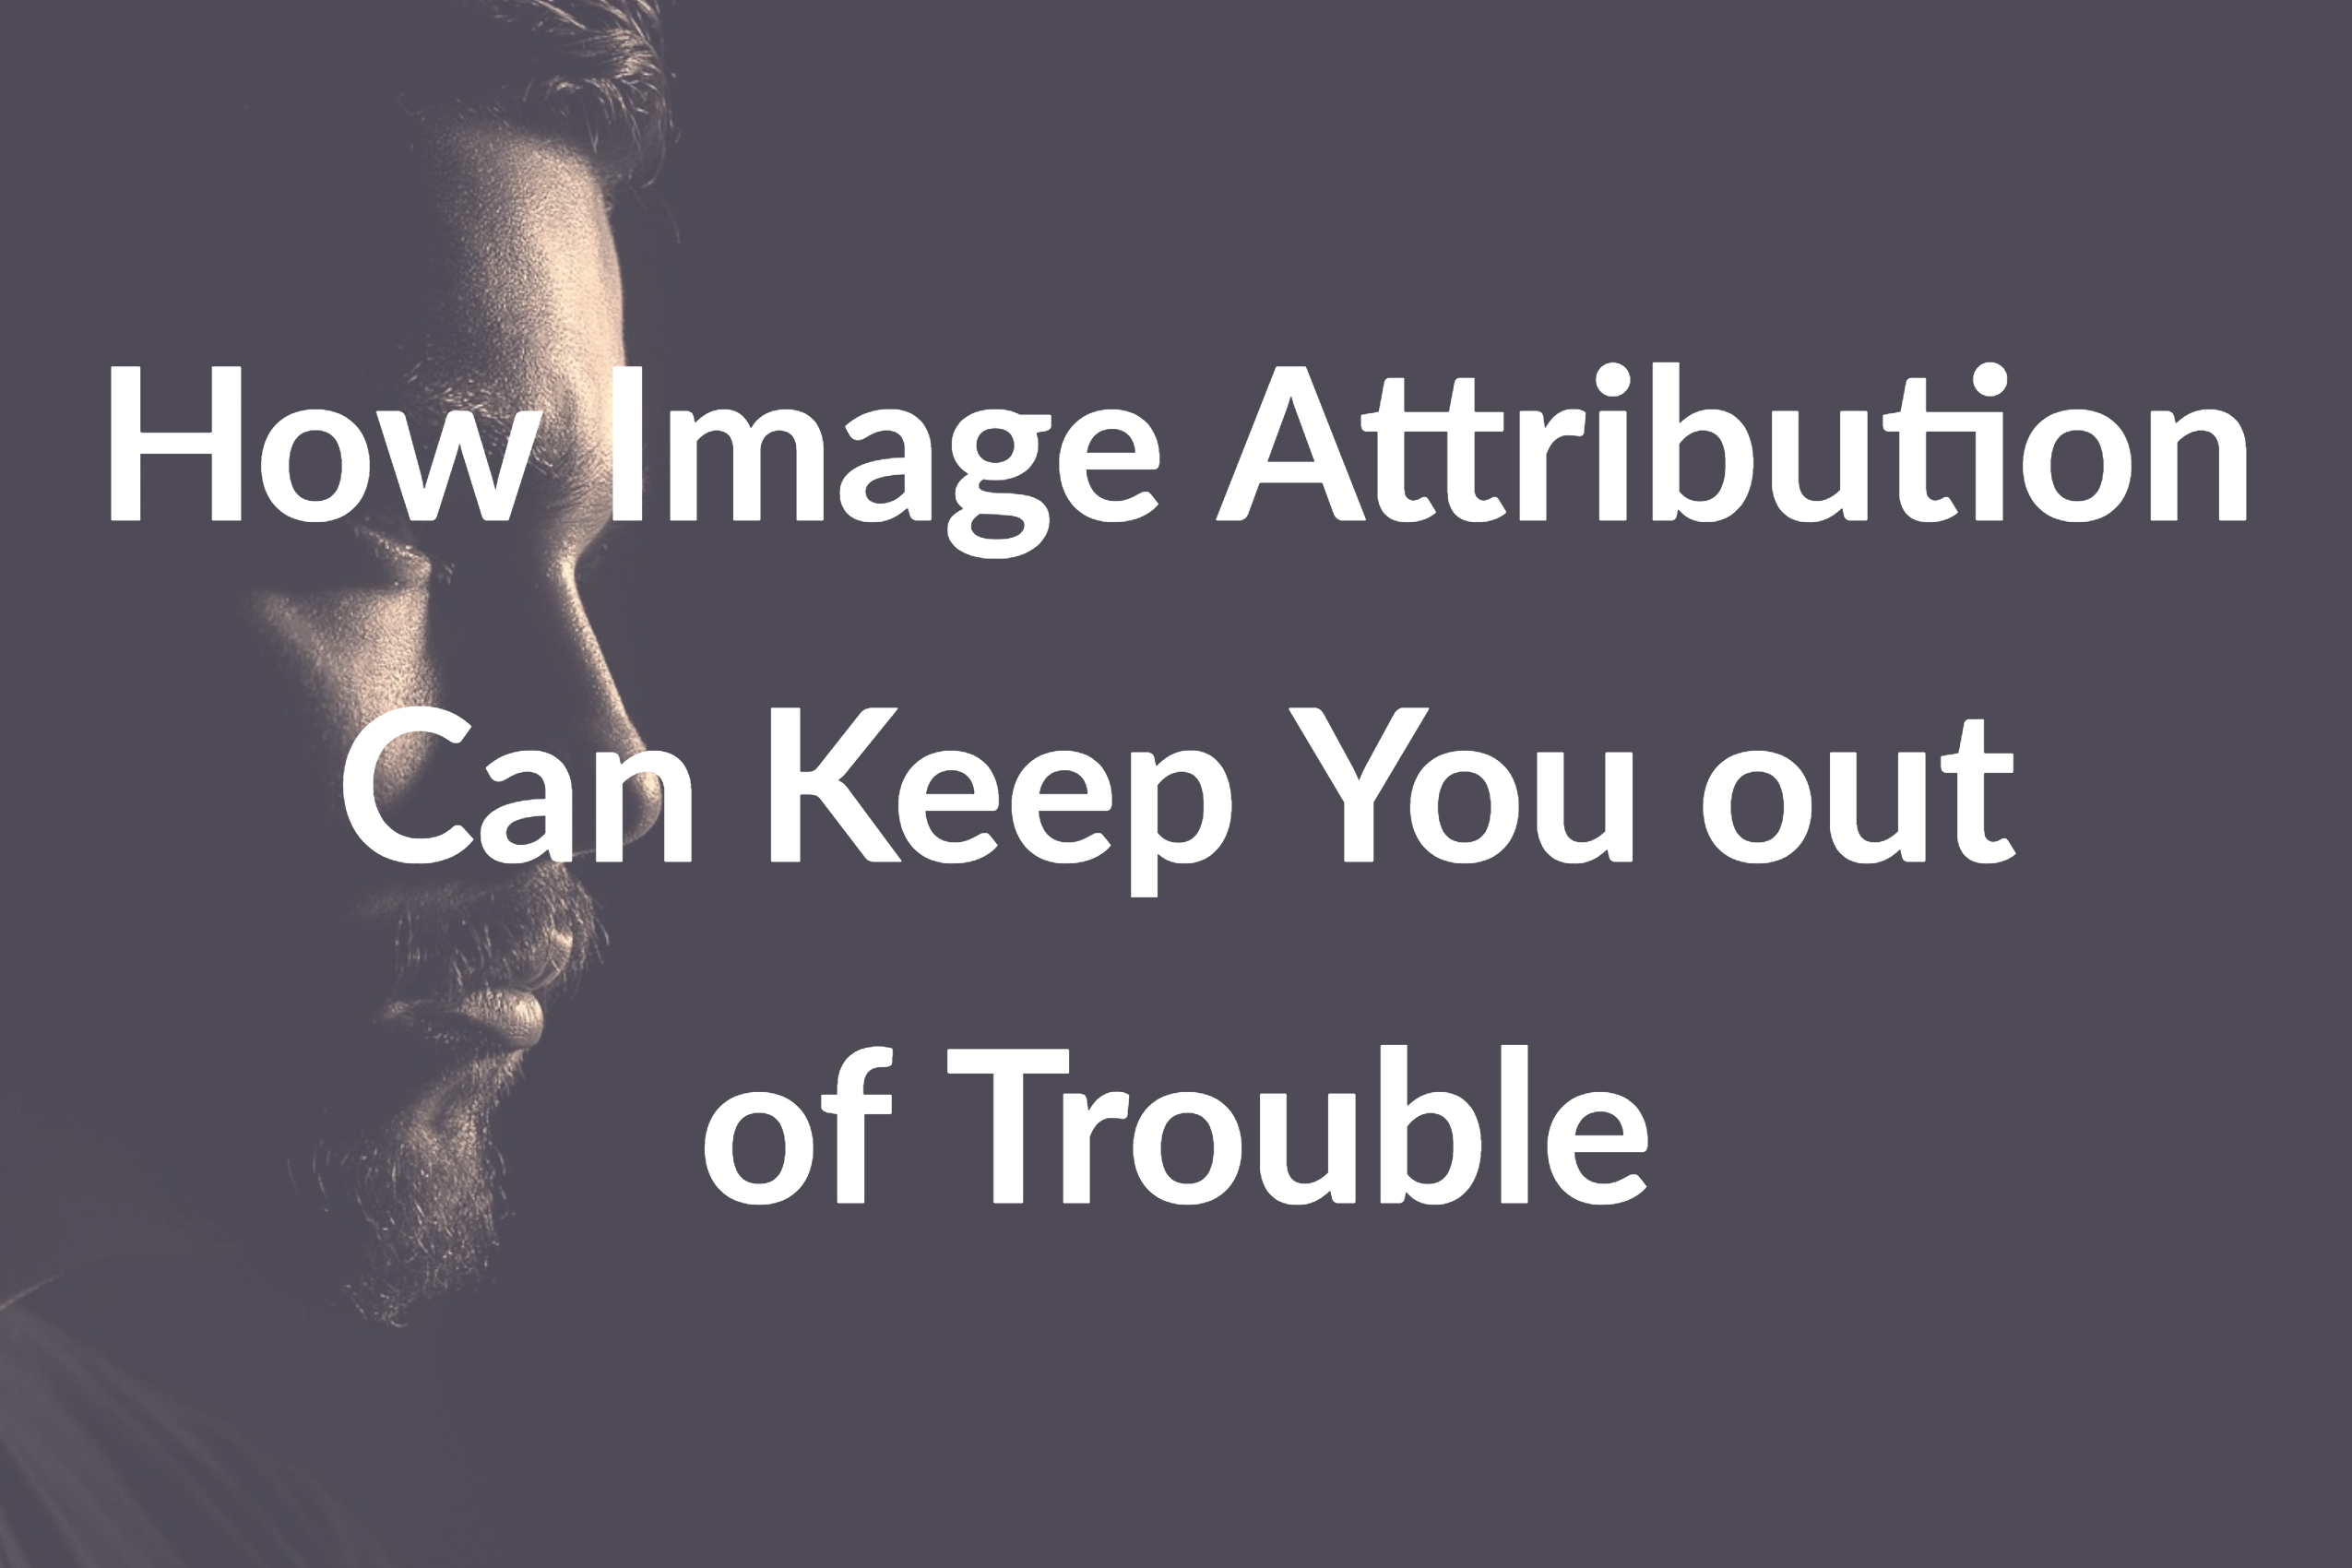 How Image Attribution Can Keep You out of Trouble